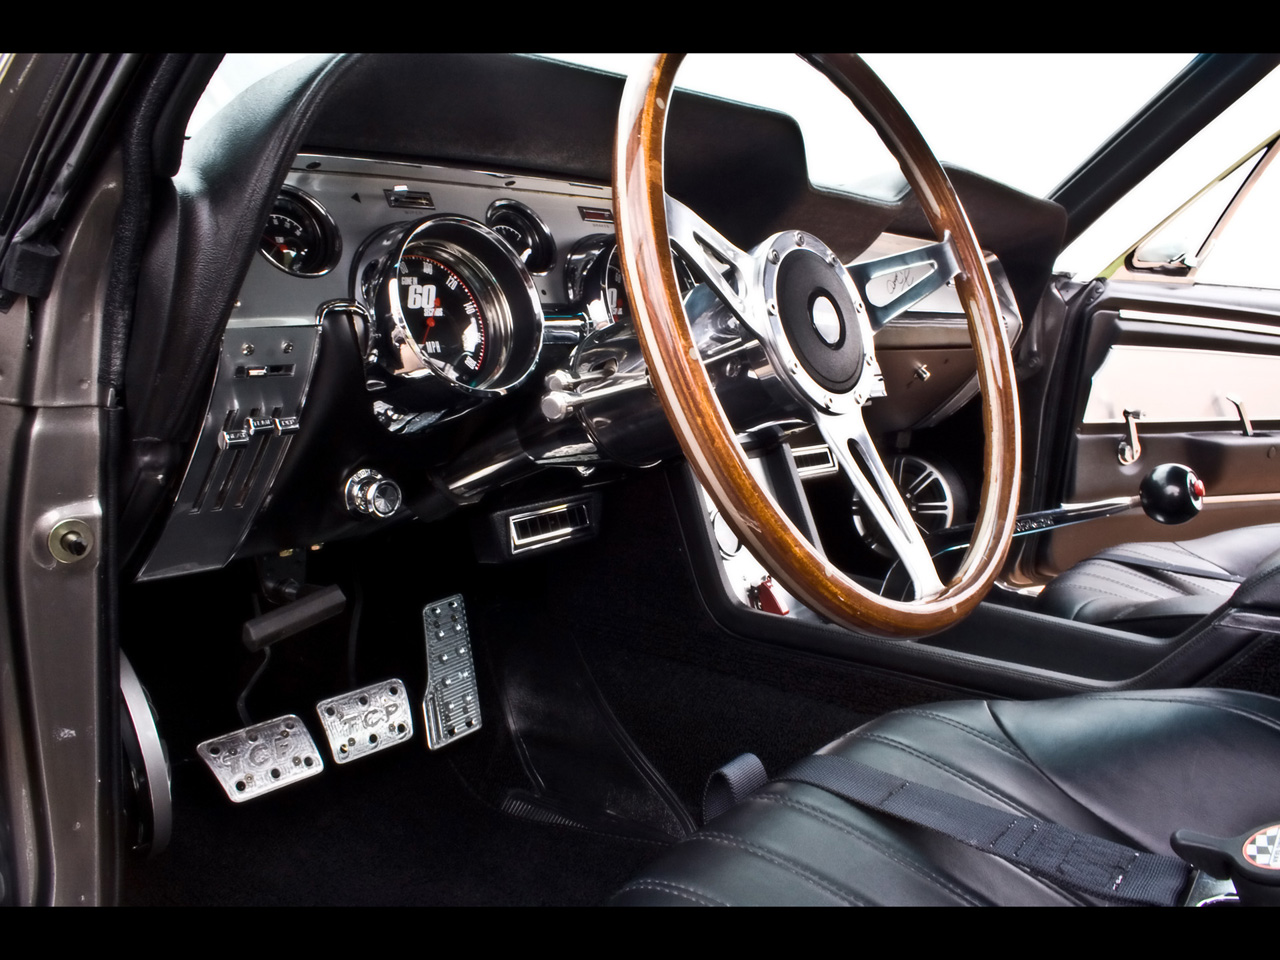 Accidente aéreo en Bali 1967-Mustang-Fastback-Gone-in-60-Seconds-Eleanor-Dashboard-1280x960